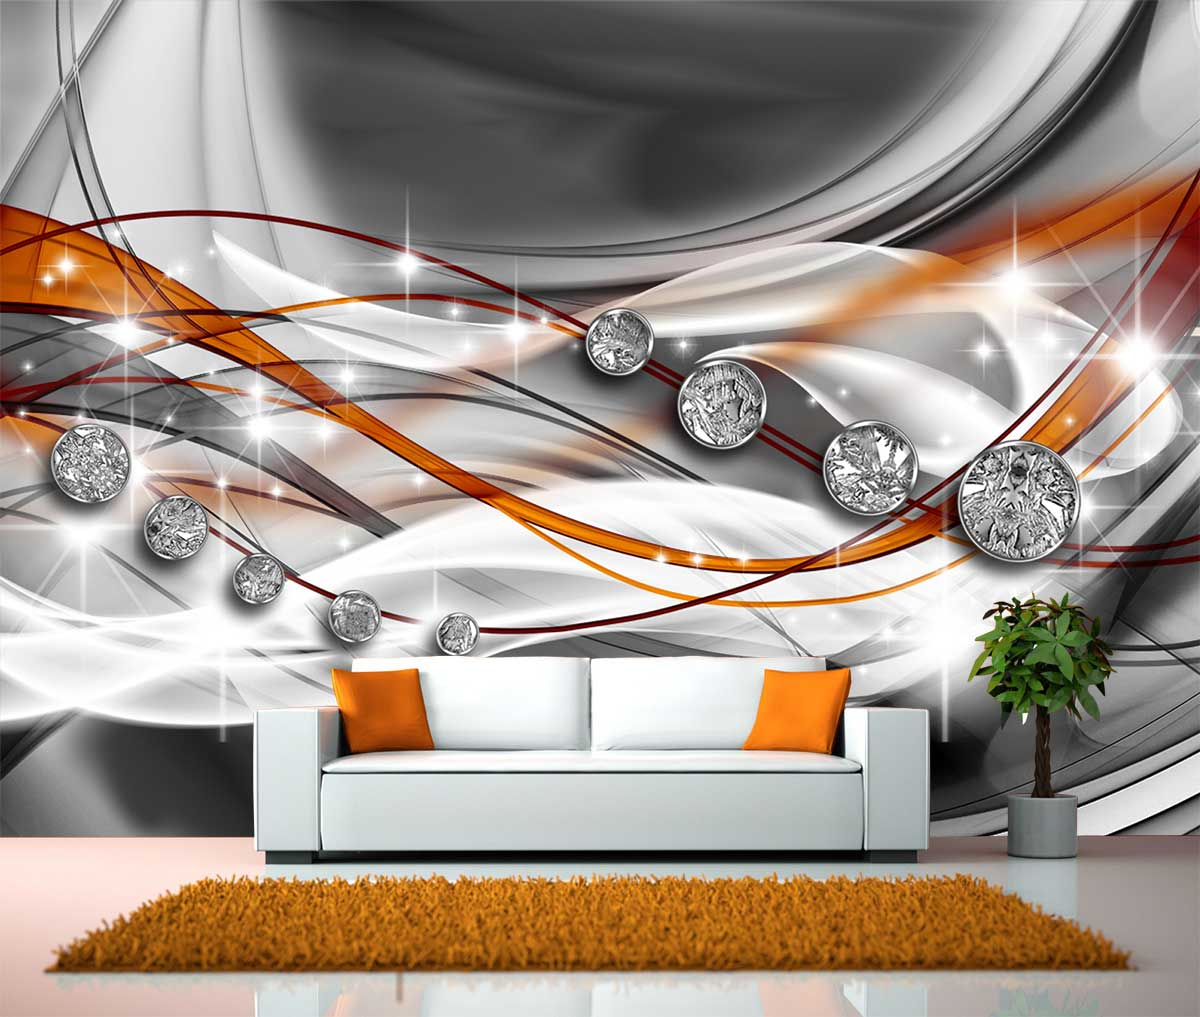 fototapete abstrakt diamant orange tapete xxl wandbild kleistertapete vliestapete. Black Bedroom Furniture Sets. Home Design Ideas